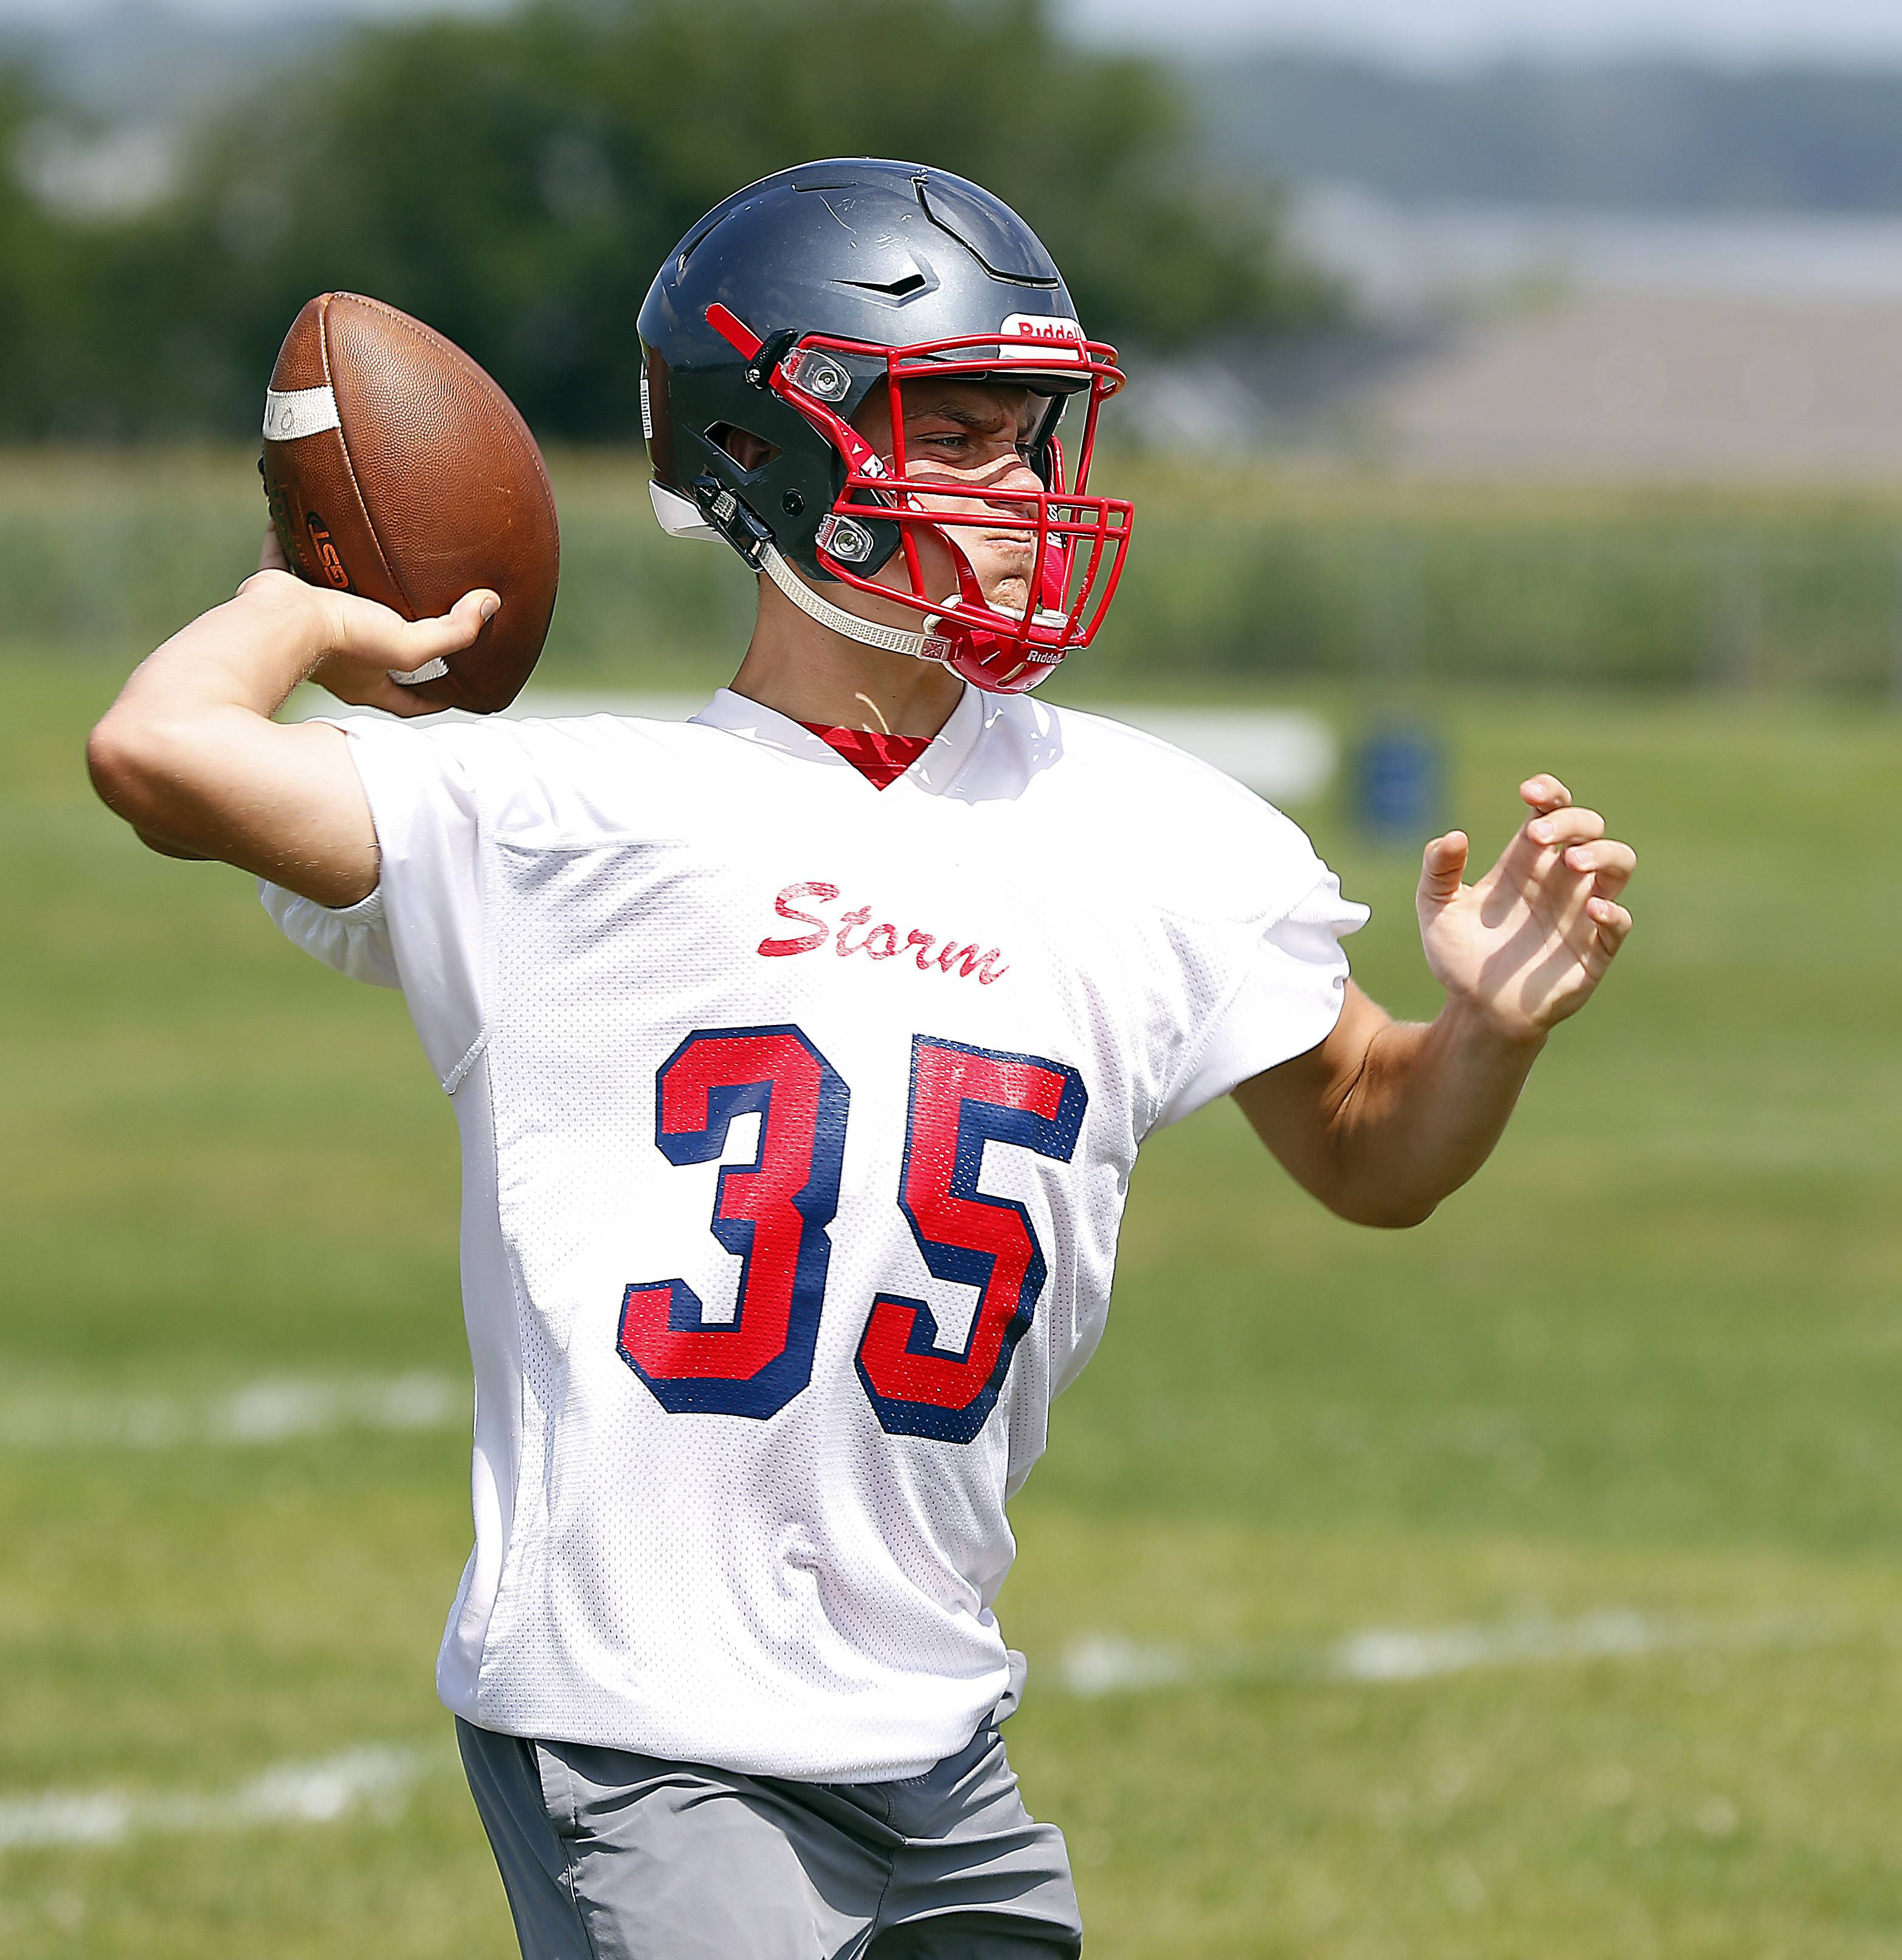 Quarterback Nate Smith Monday during South Elgin football practice.